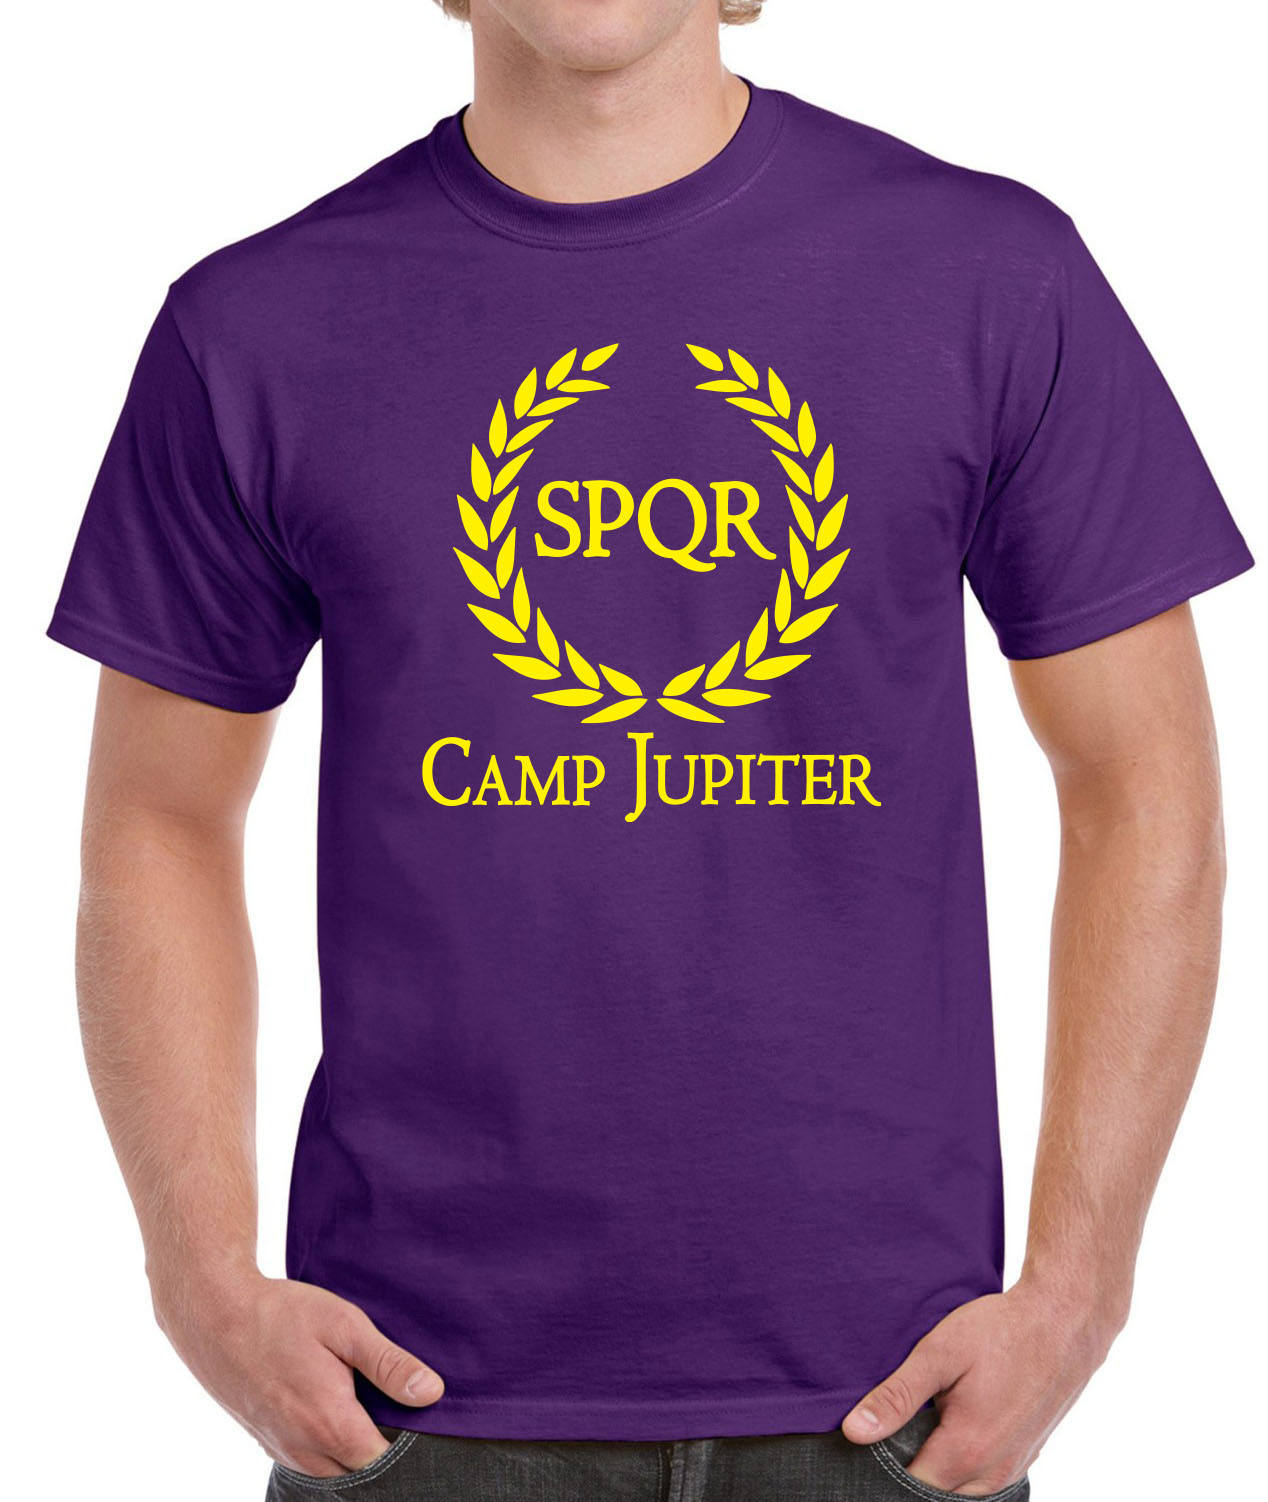 Camp Half-Blood Zweige Camp Jupiter T-Shirt Percy Jackson ... Camp Jupiter Shirt Percy Jackson